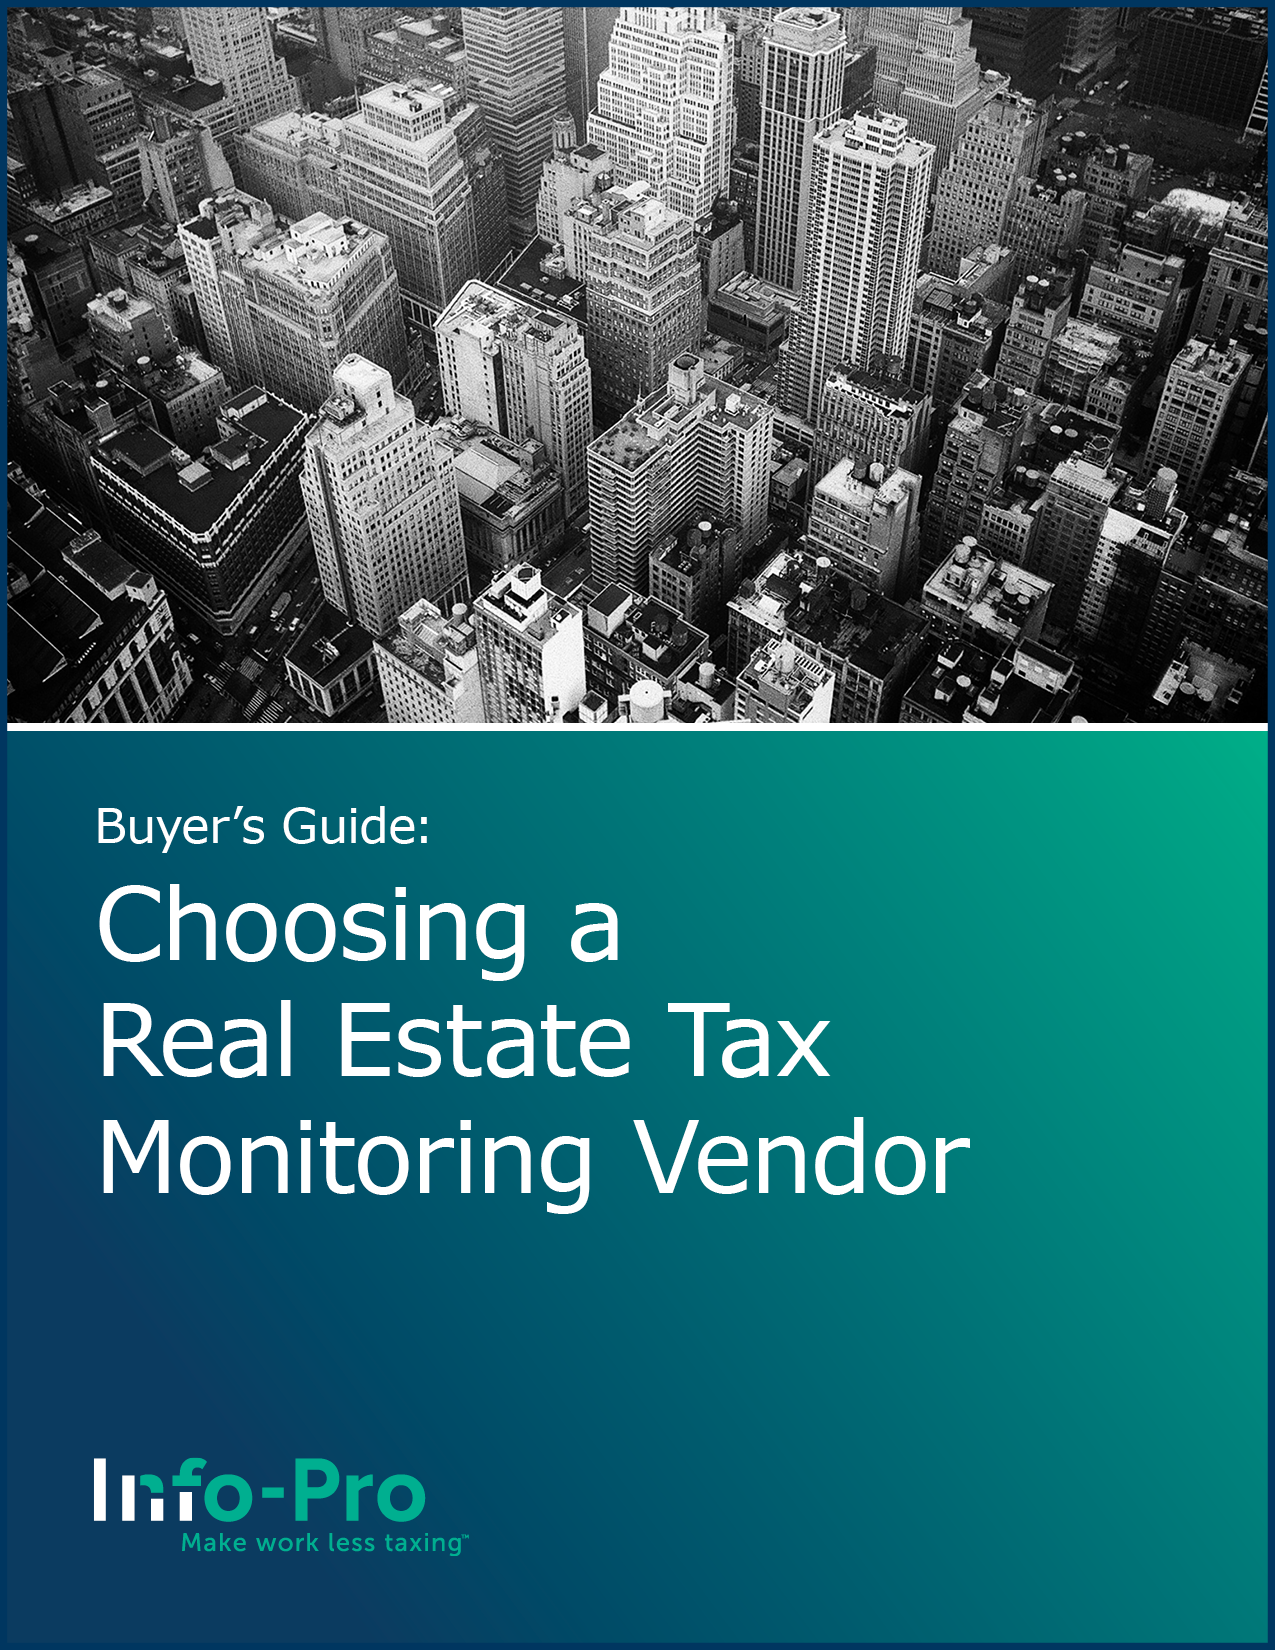 Buyers guide: Choosing a real estate tax monitoring vendor